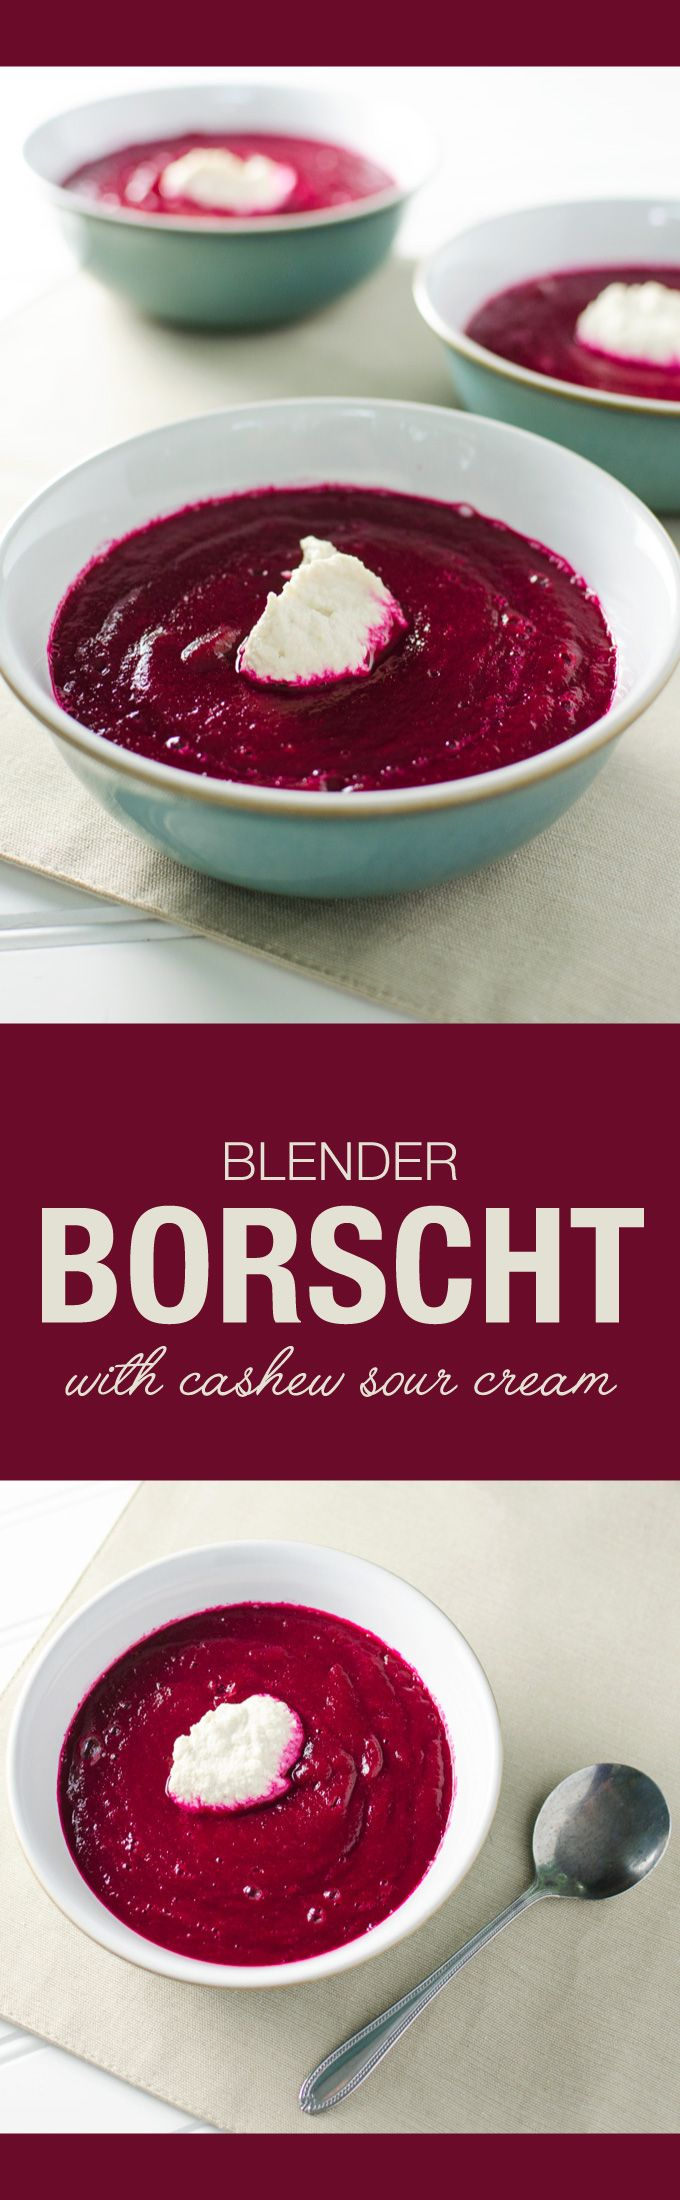 ideas about Borscht Borscht Recipe, Soups and